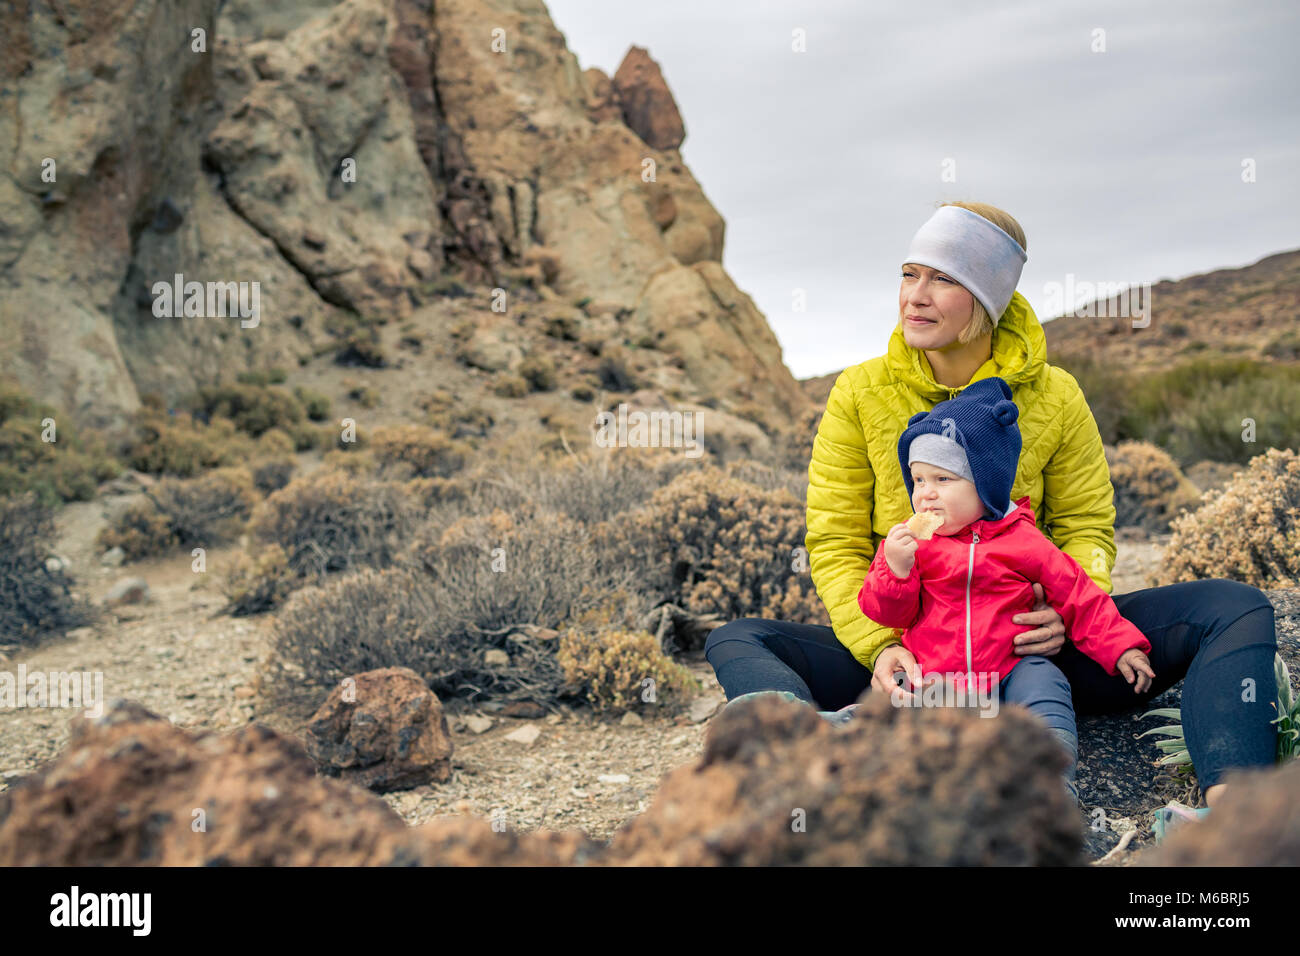 Happy mother with little boy travelling in mountains. Hiking and camping adventure with child on autumn family trip. - Stock Image